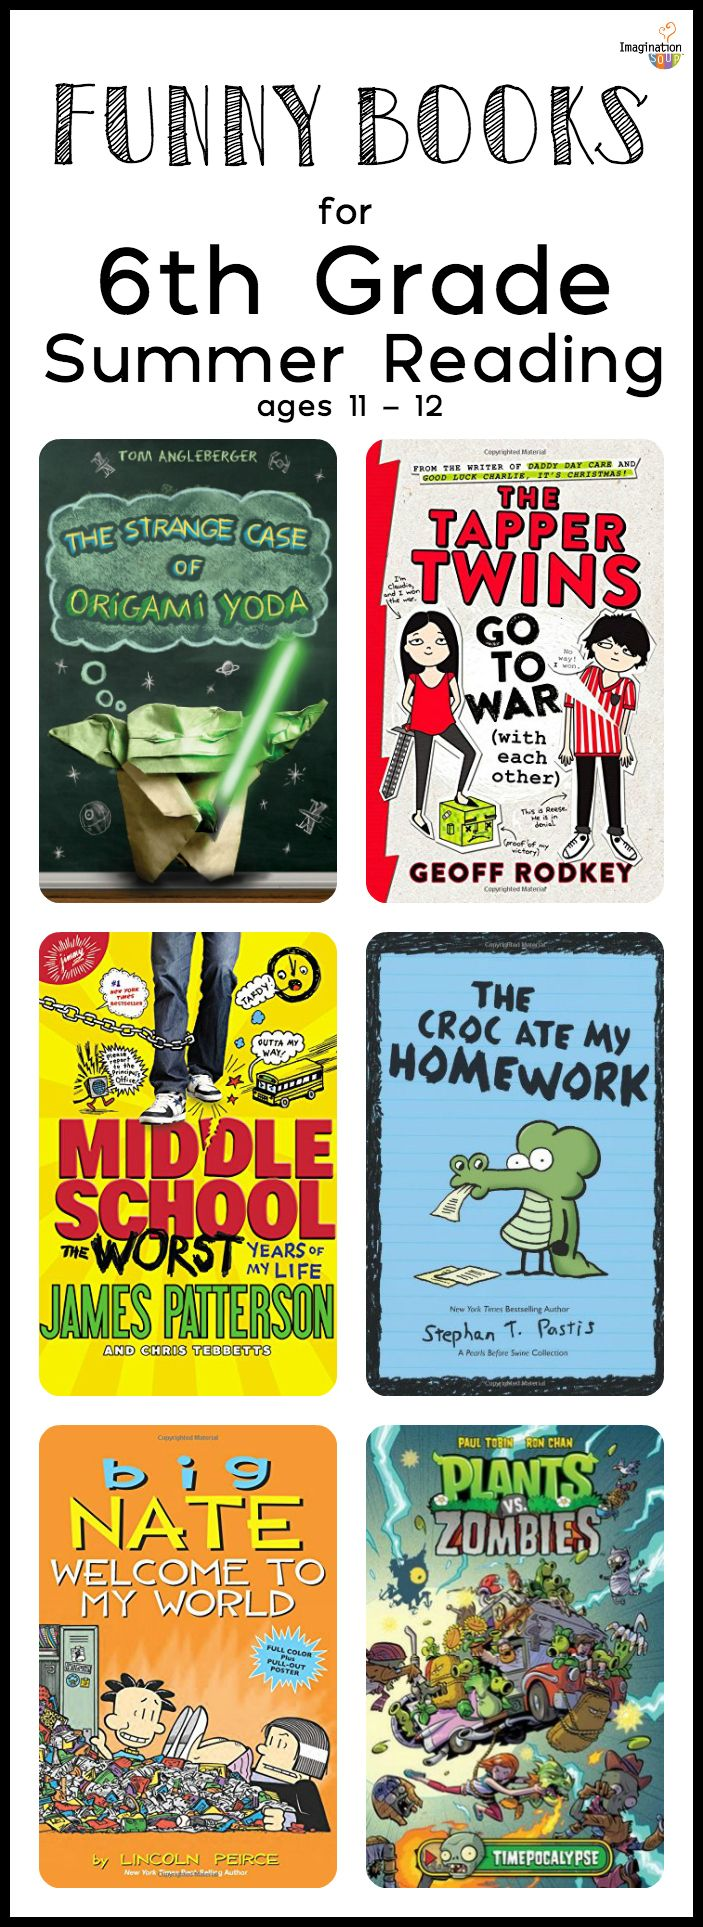 6th Grade Summer Reading List (ages 11 - 12) | Imagination Soup